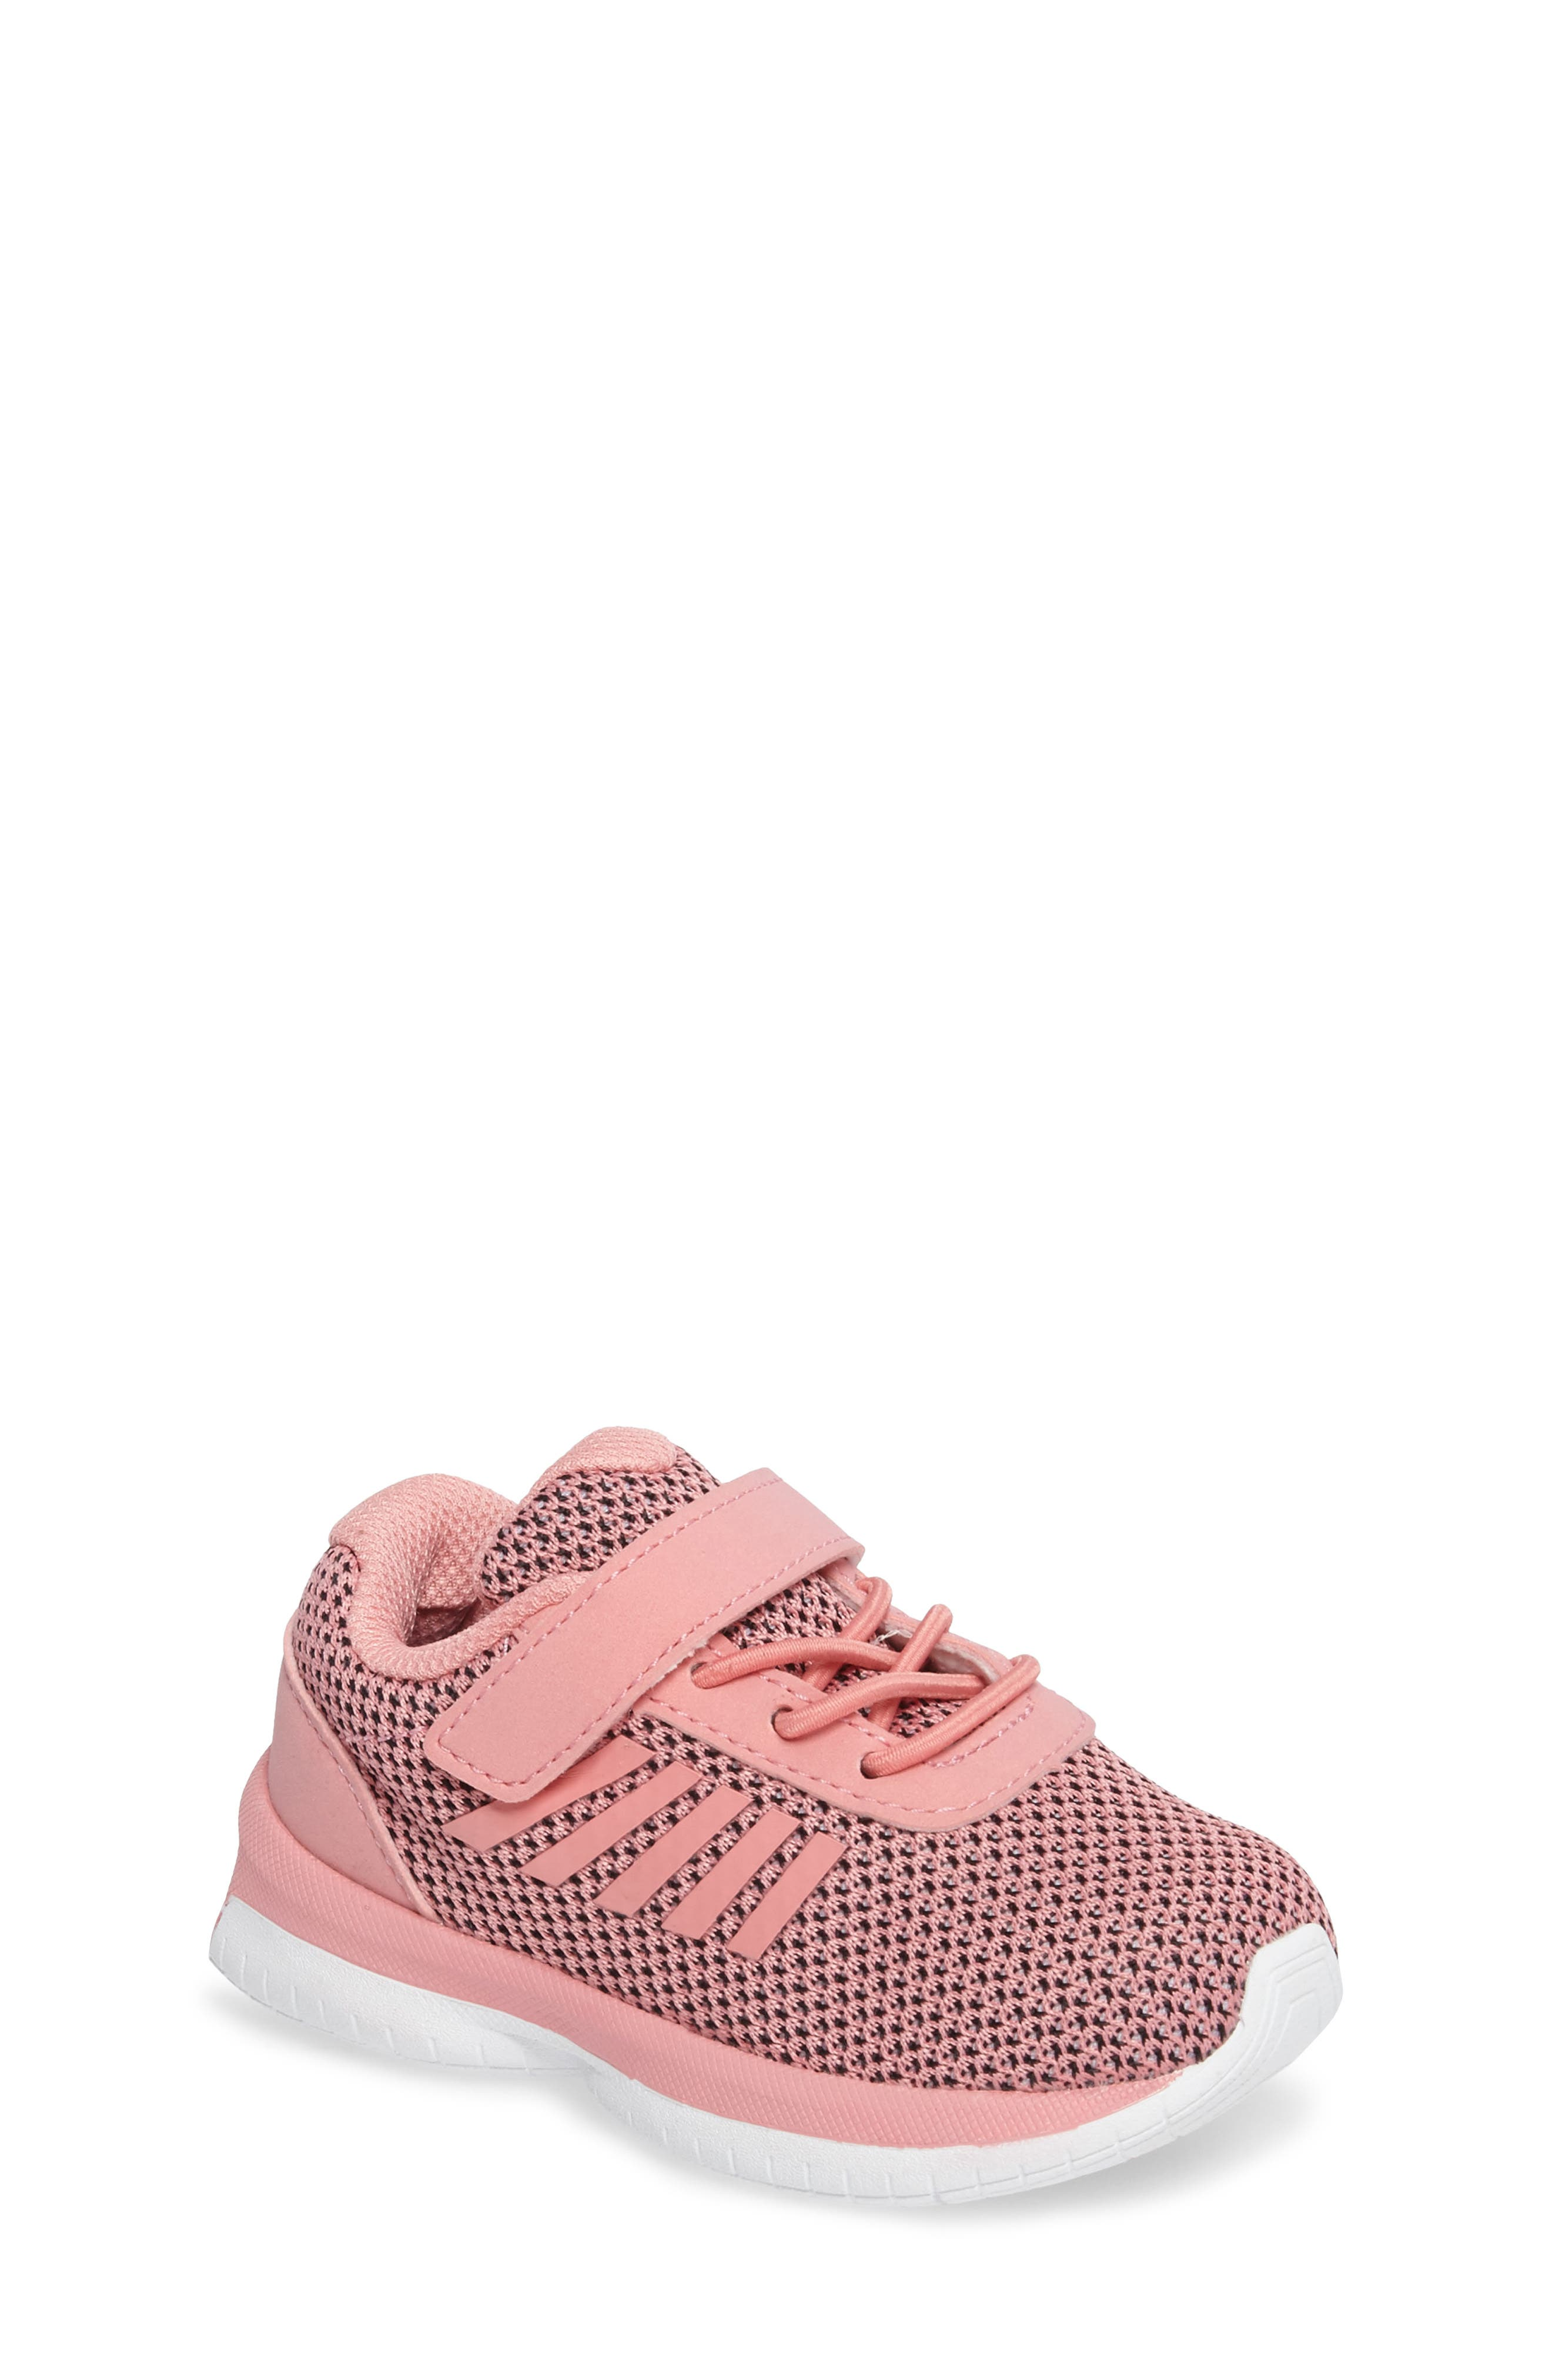 k swiss shoes autumn calabrese